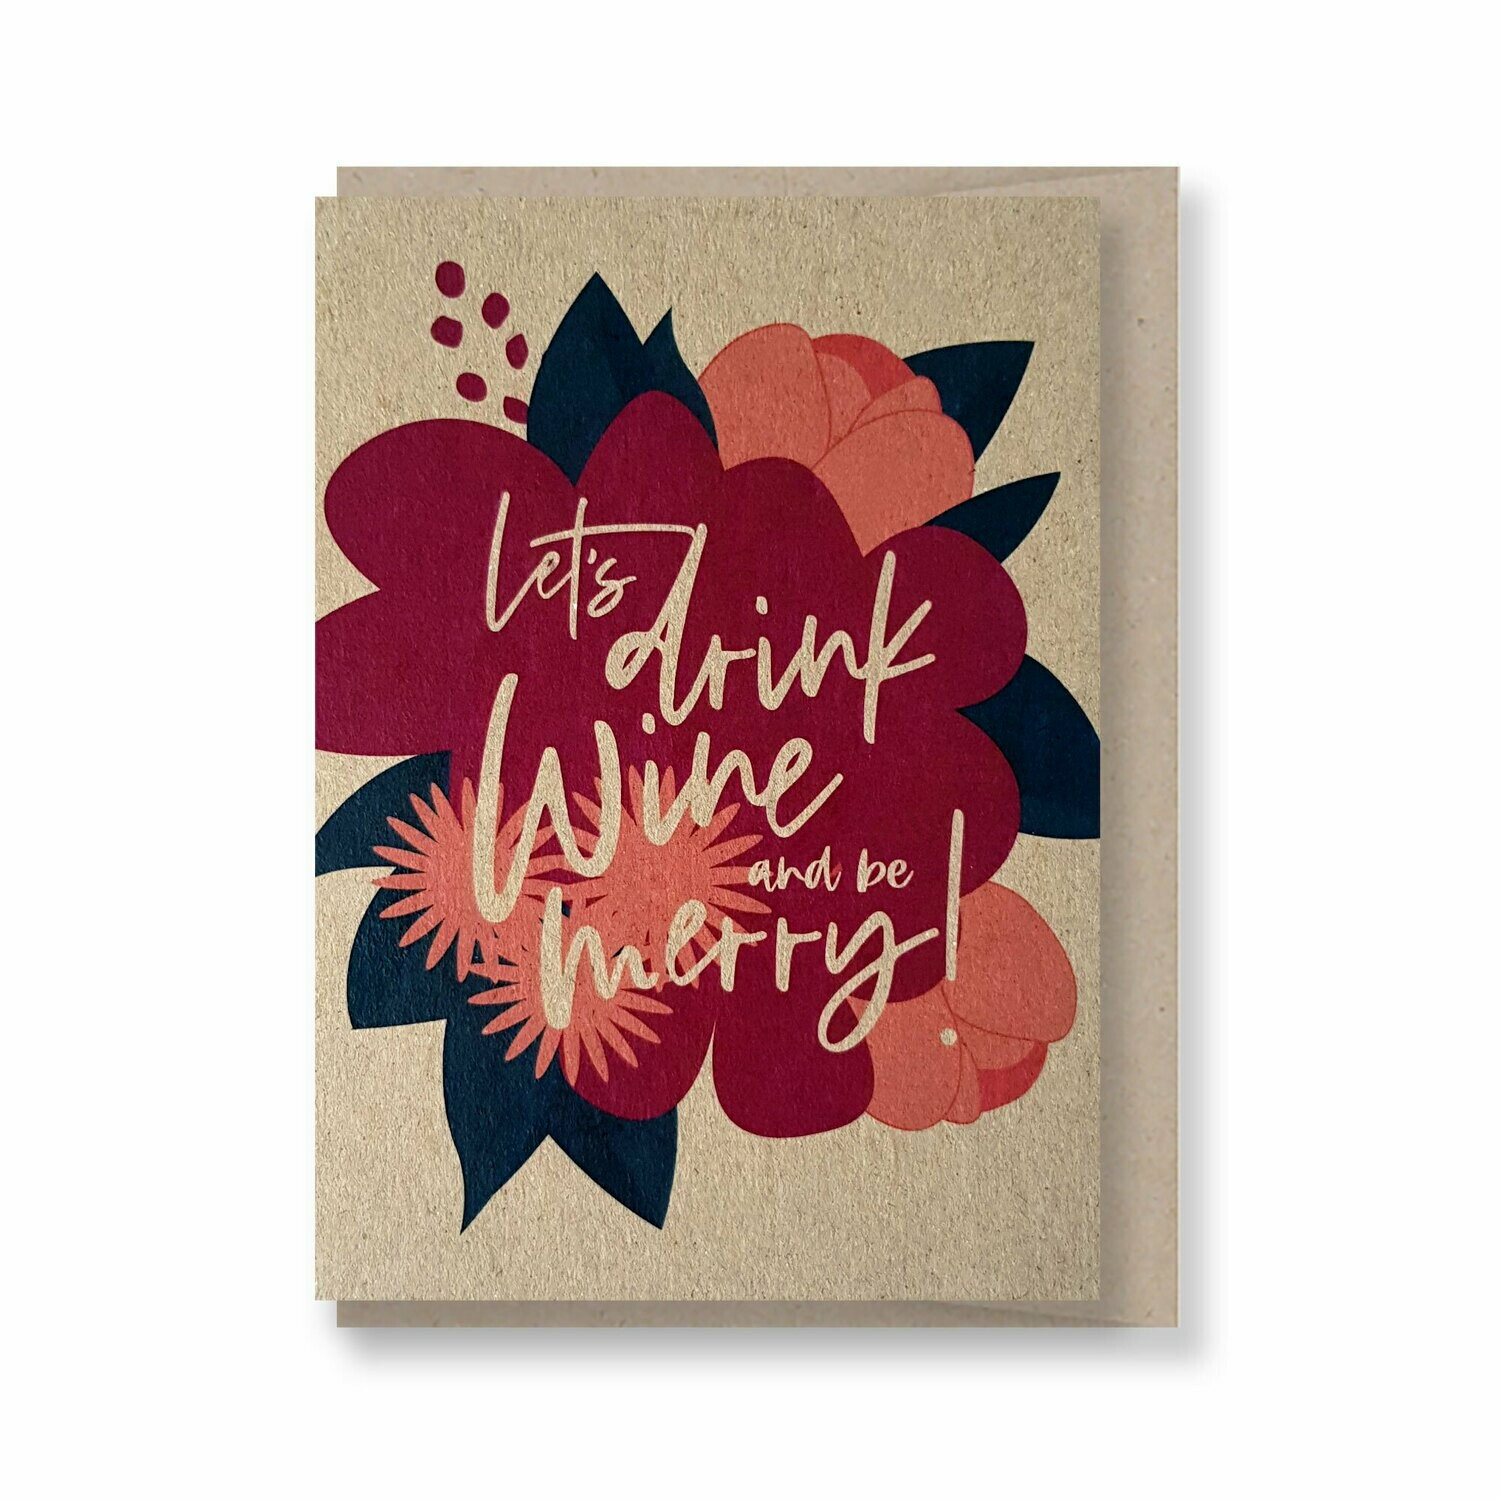 Let's drink and be merry! - Christmas Gift Card